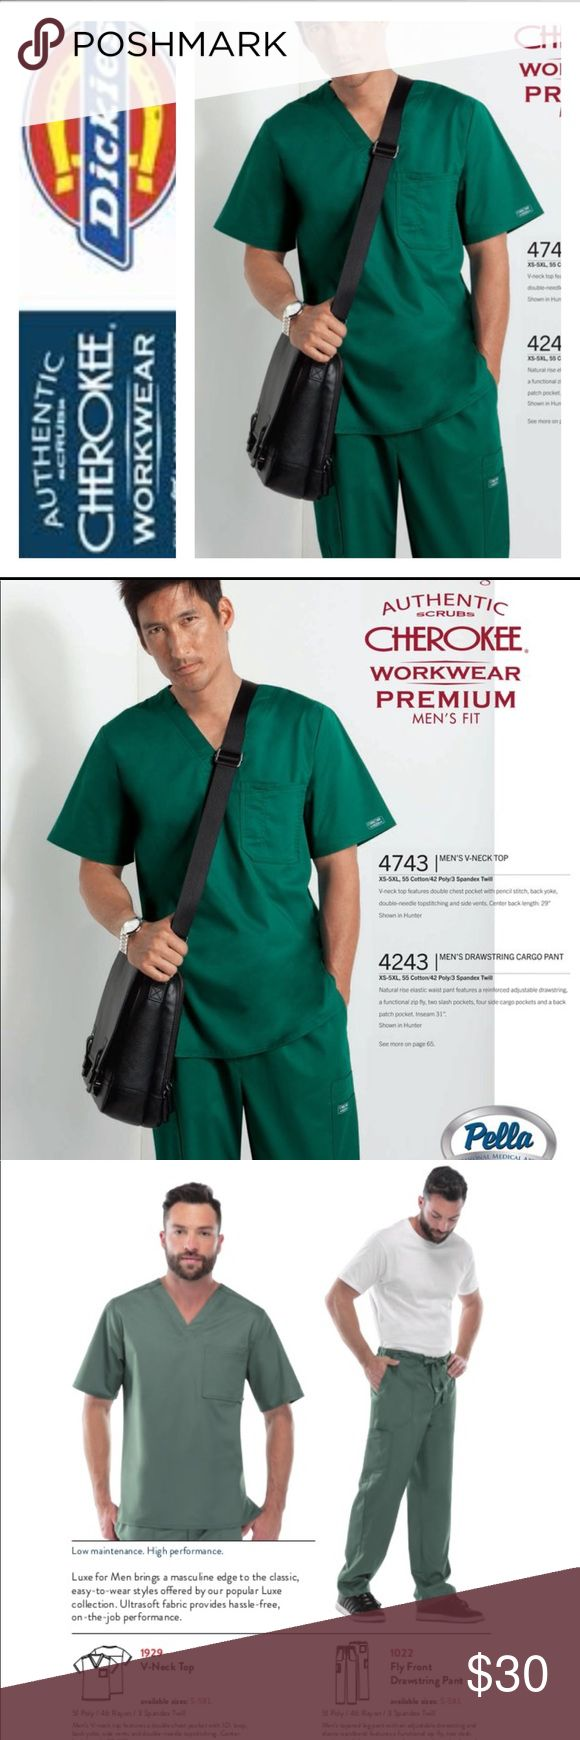 ⛑New Men Plus Size Cherokee Medical Uniform ⛑ ⭐️Selling New With Store Tags Cherokee Luxe Brand Medical Scrubs Sets ⭐️ Its one of the Softest Scrubs That I Sold The Most at My Business ⭐️The only sizes that I have is a 4x & 5 X Mens.. Can be also be worn for Women⭐️ Top Style is 1929 & Bottom Style is 1022 ⭐️ The Bottoms have a Zipper so that a Plus 👍🏼.. & hast Elastic on the back side and string on the Front Side ⭐️I only have them in Green ⭐️ Cherokee Other